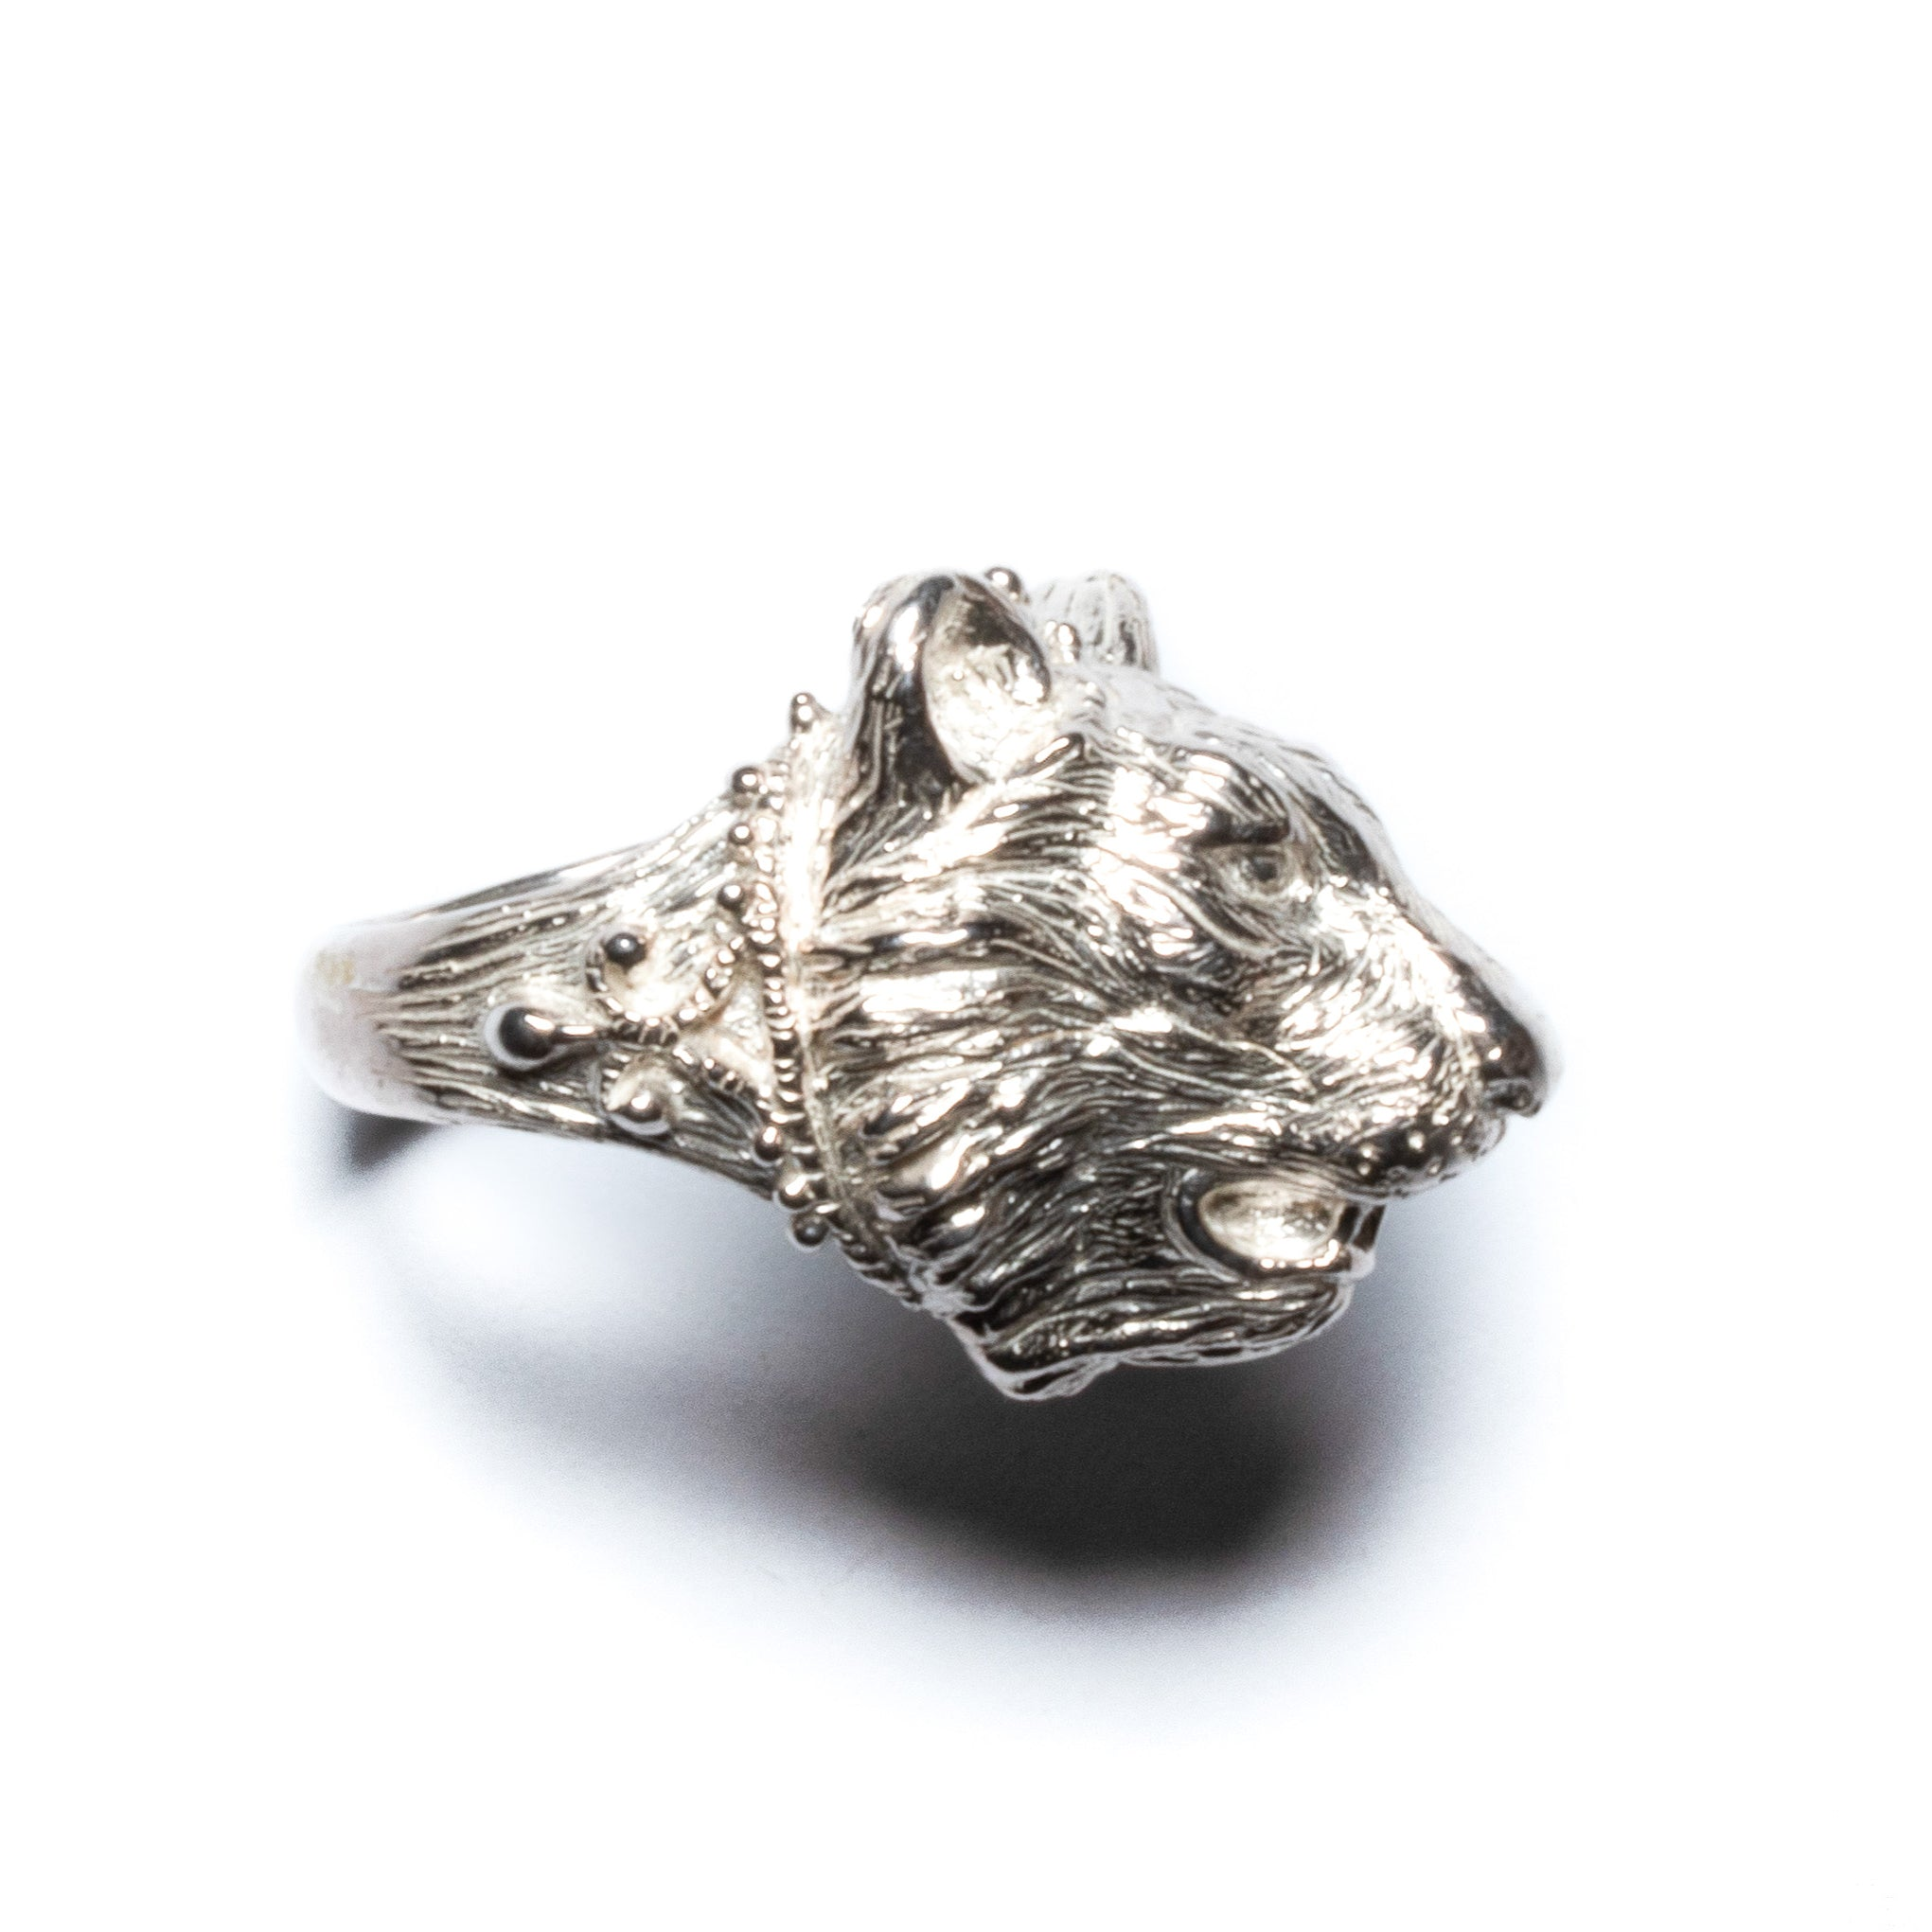 Tiger ring ~ (polished silver)